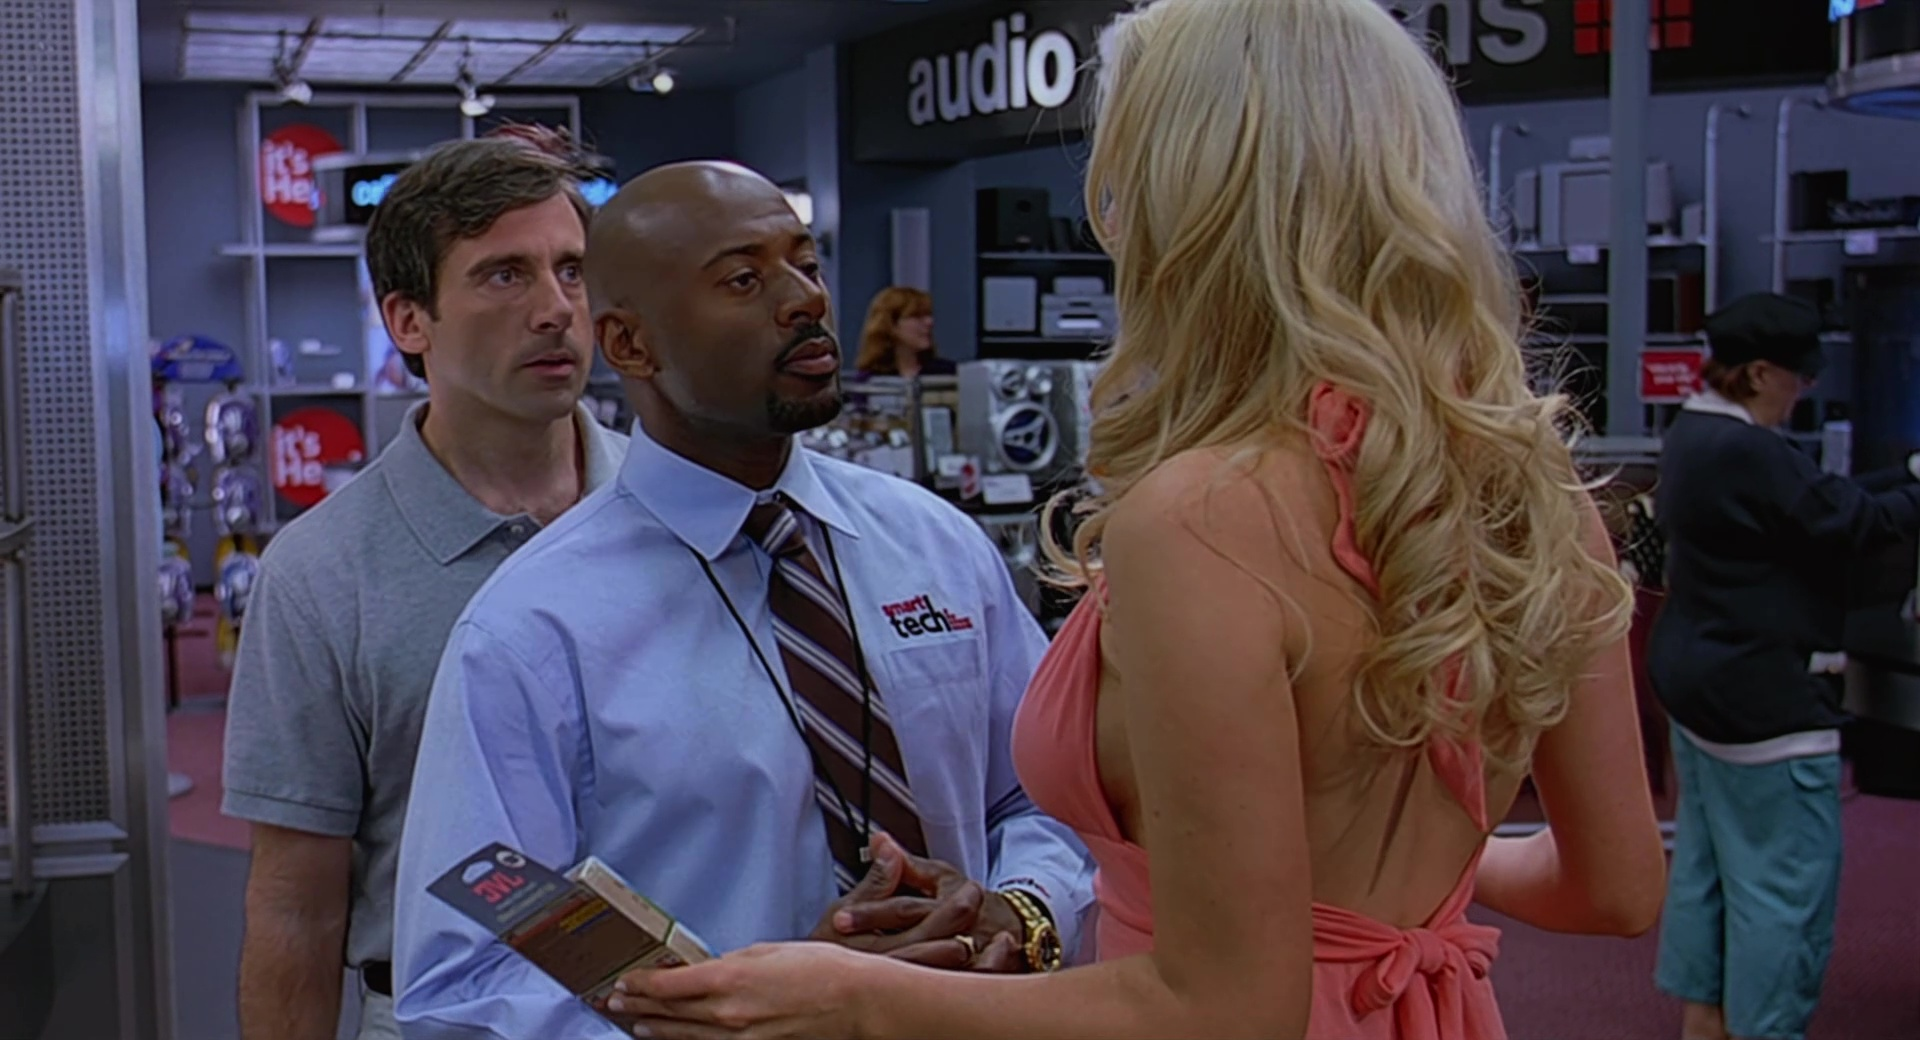 Jvc In The 40 Year Old Virgin 2005